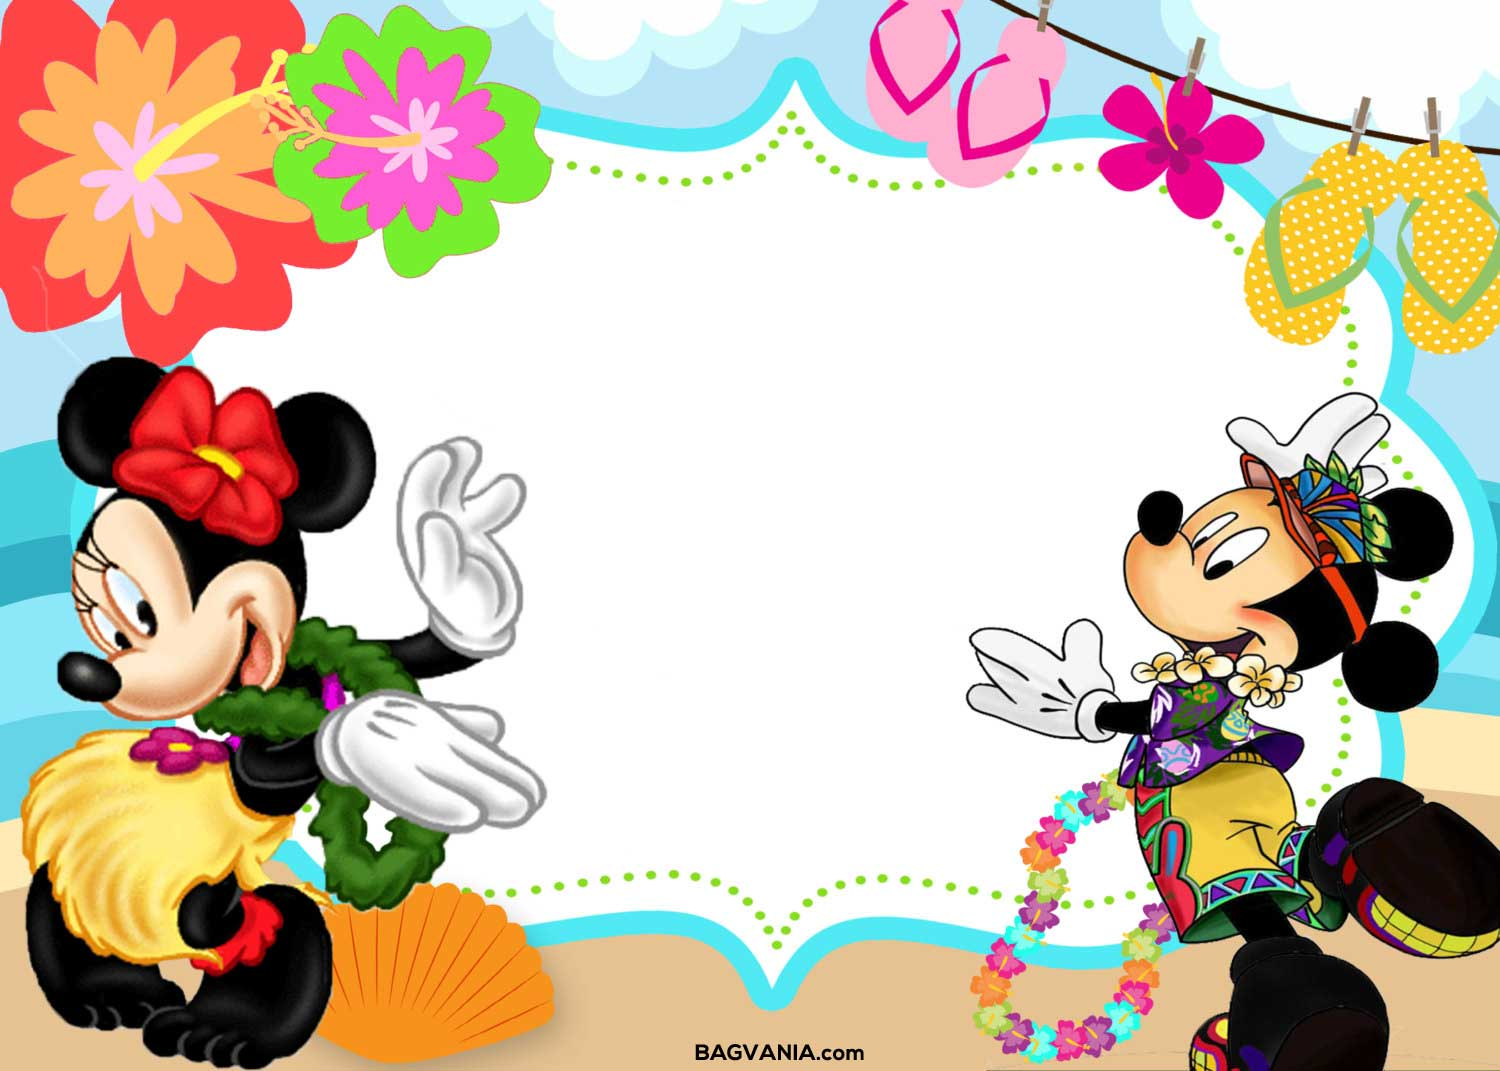 Free printable mickey mouse birthday invitations bagvania free all of the files comes in colorful ways this free printable template is low budget thus you can save the rest to decorate the rooms pronofoot35fo Image collections